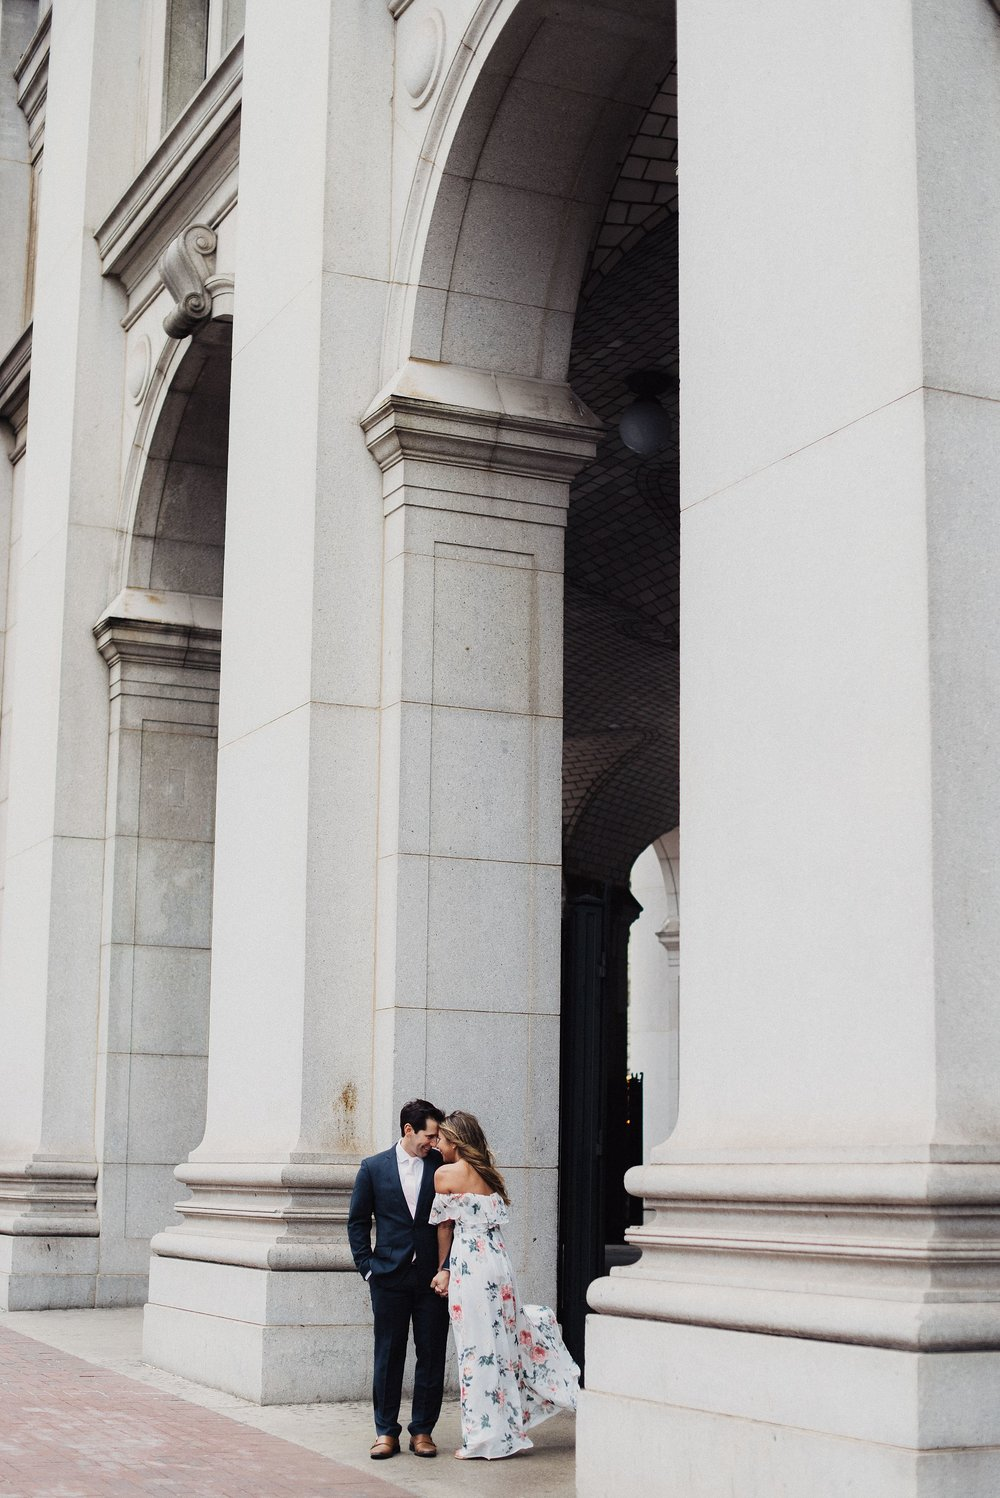 New York City Wedding Photographer Eden Strader